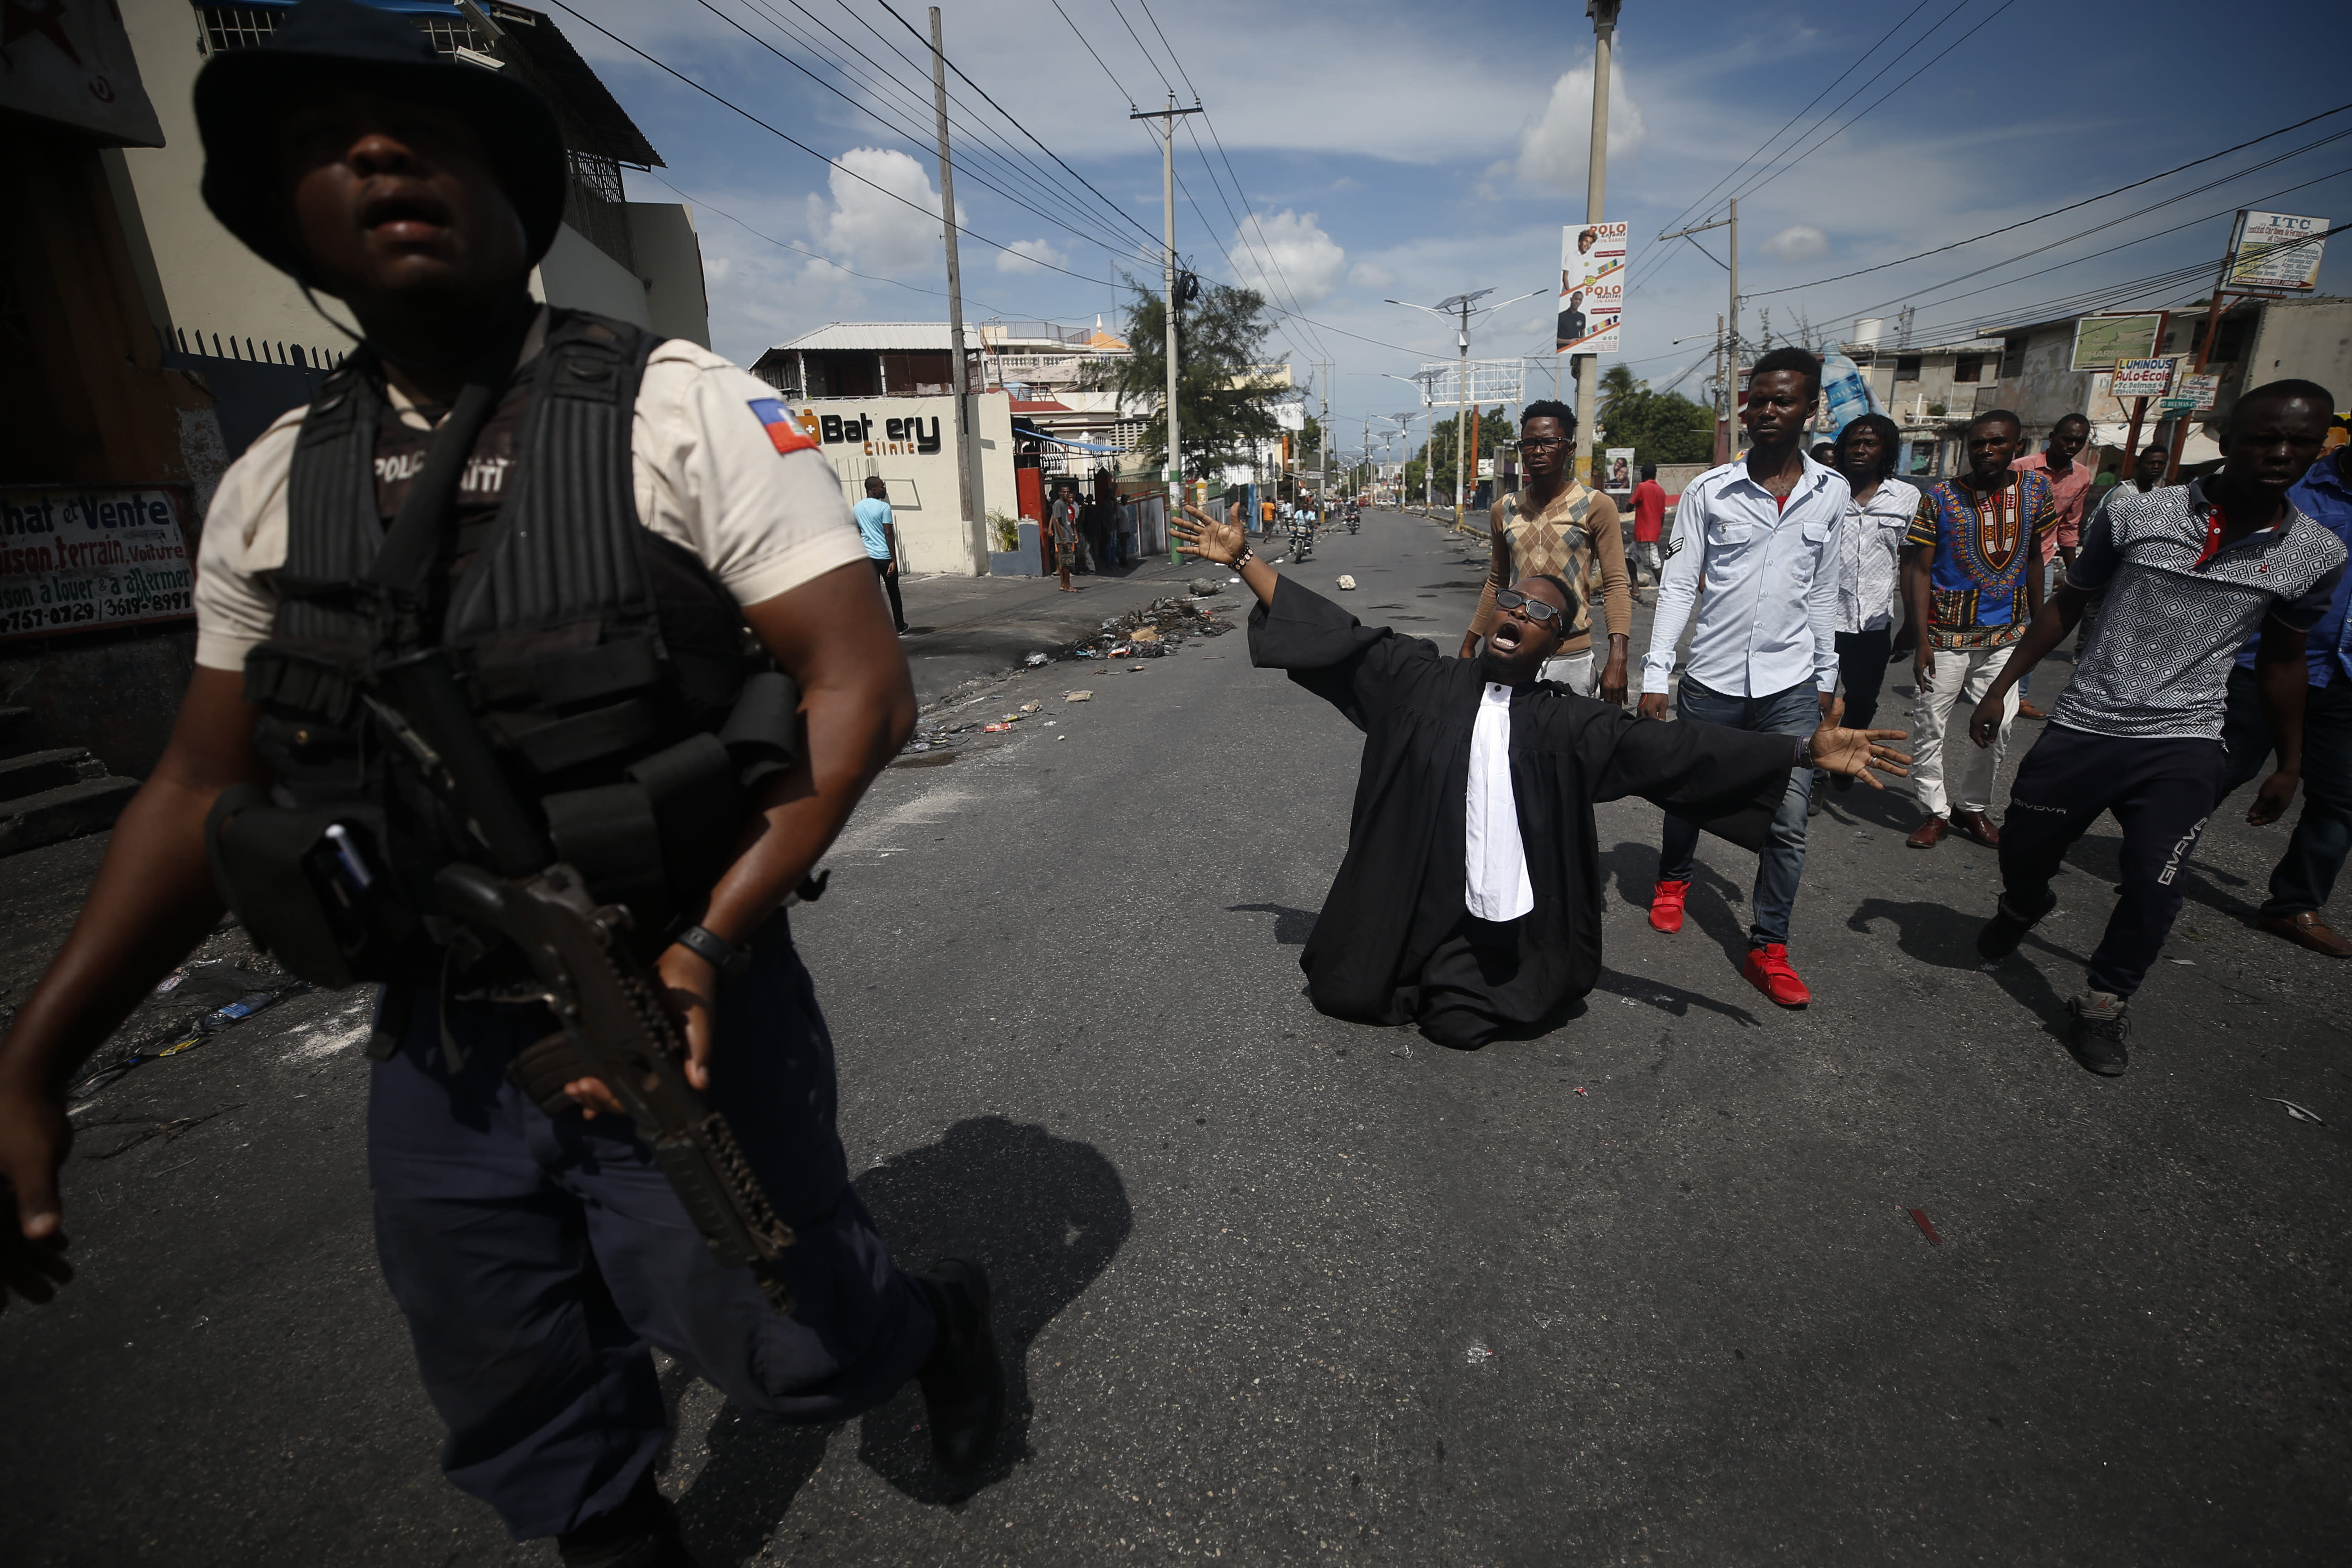 """Paseus Juvensky St. Fleur, who trained as a lawyer and is now an activist working for social justice, drops to his knees as protestors trying to set up a barricade across a major road argue with police trying to stop them, in Port-au-Prince, Haiti, Wednesday, Oct. 2, 2019. A group of men was protesting at the intersection after commissioning a mural of opposition organizer Jose Mano Victorieux, known as """"Badou,"""" who they said was executed Saturday night by unknown assailants.(AP Photo/Rebecca Blackwell)"""